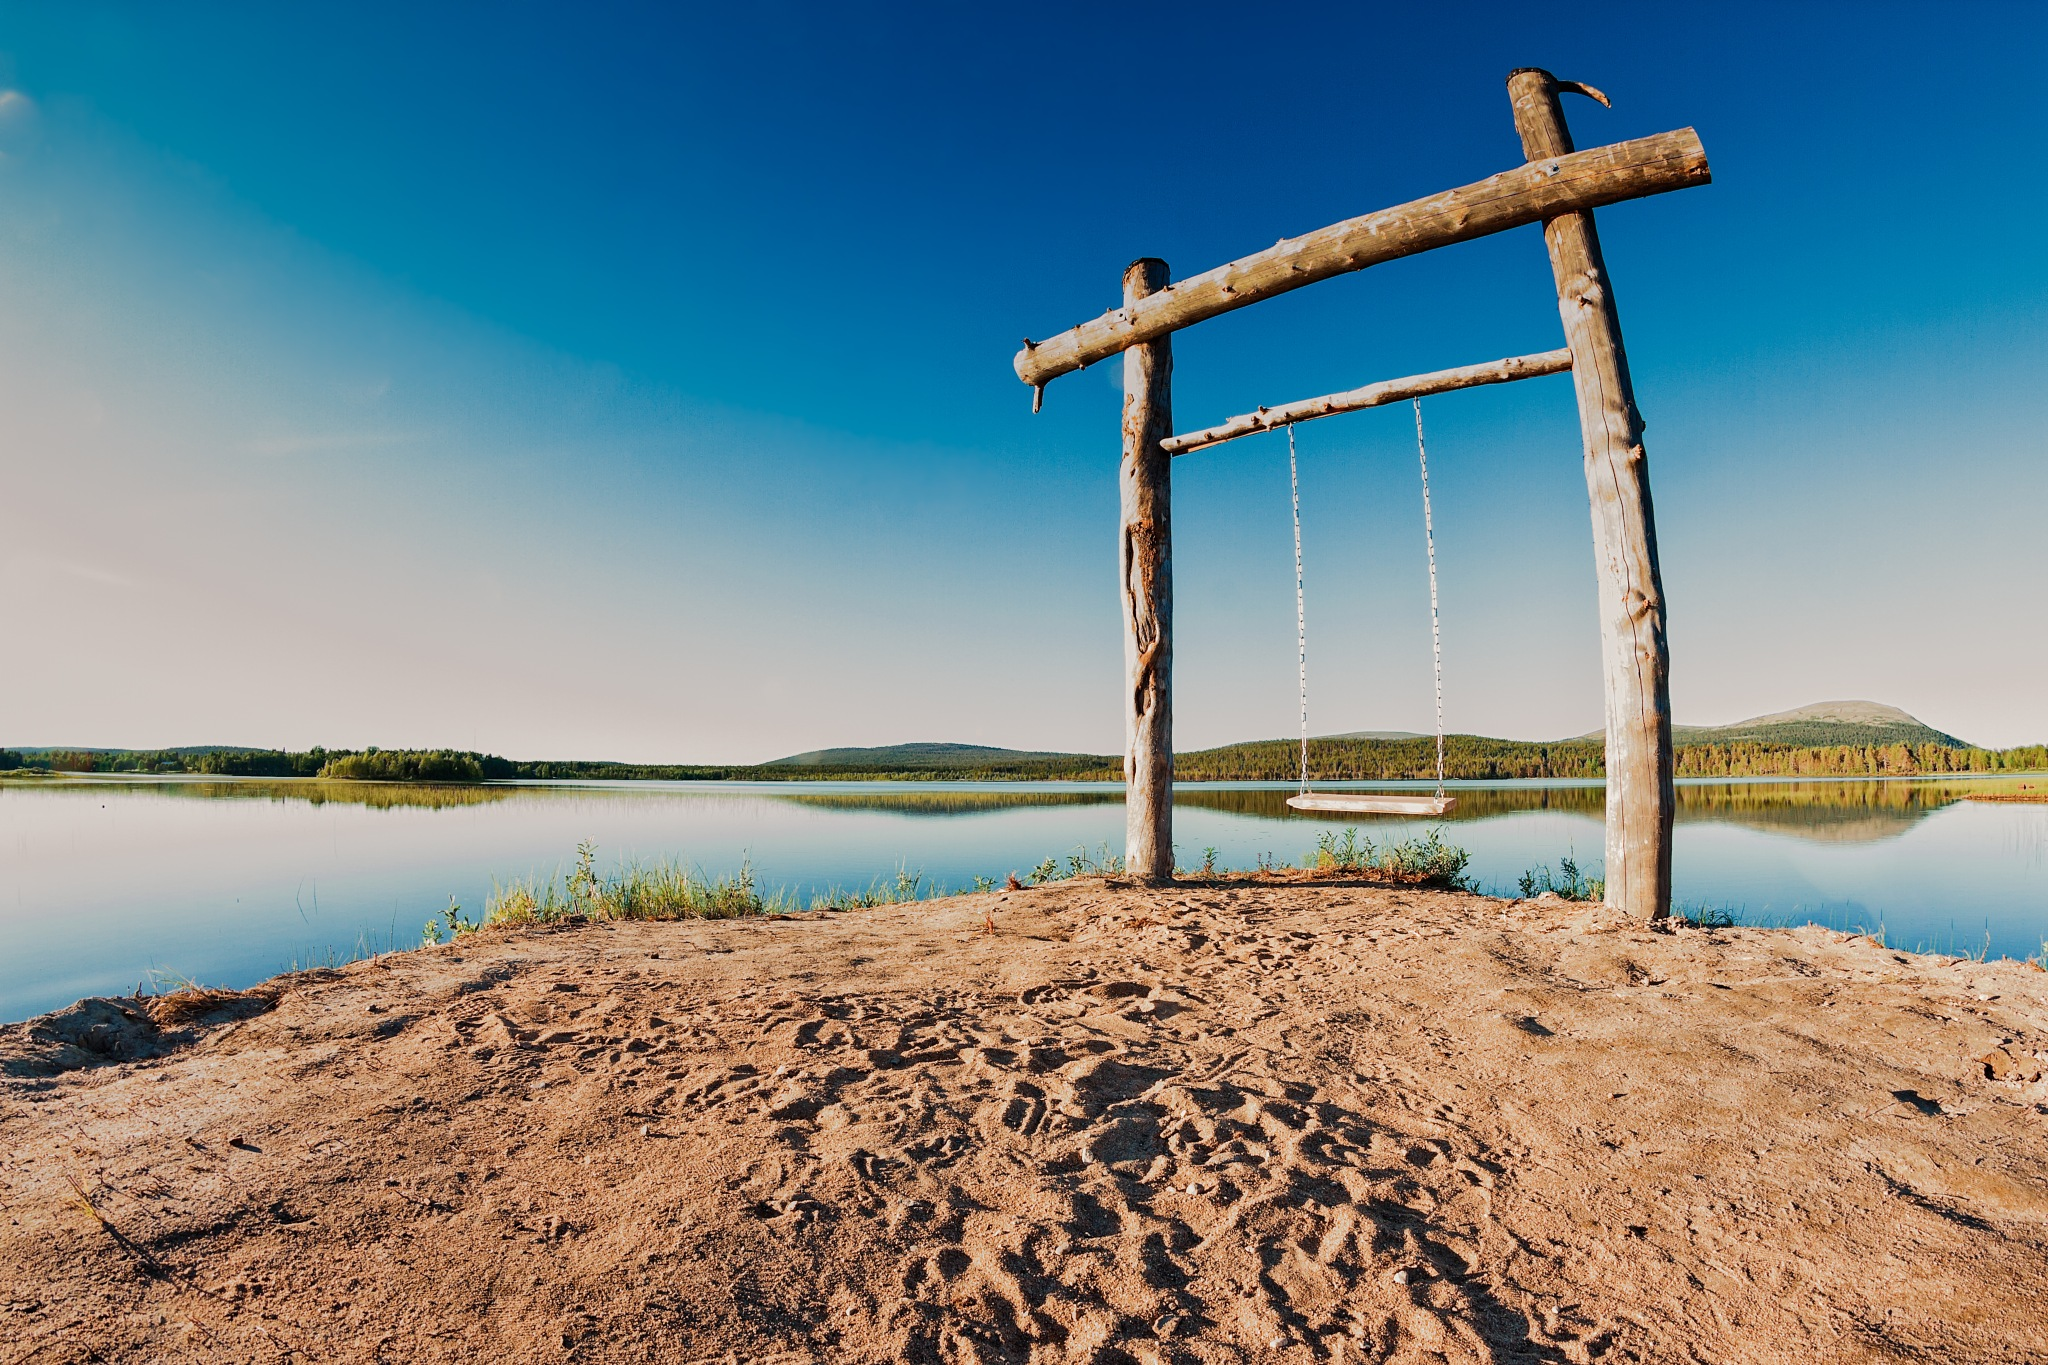 Swing By The Lake by J.P. Heinovirta